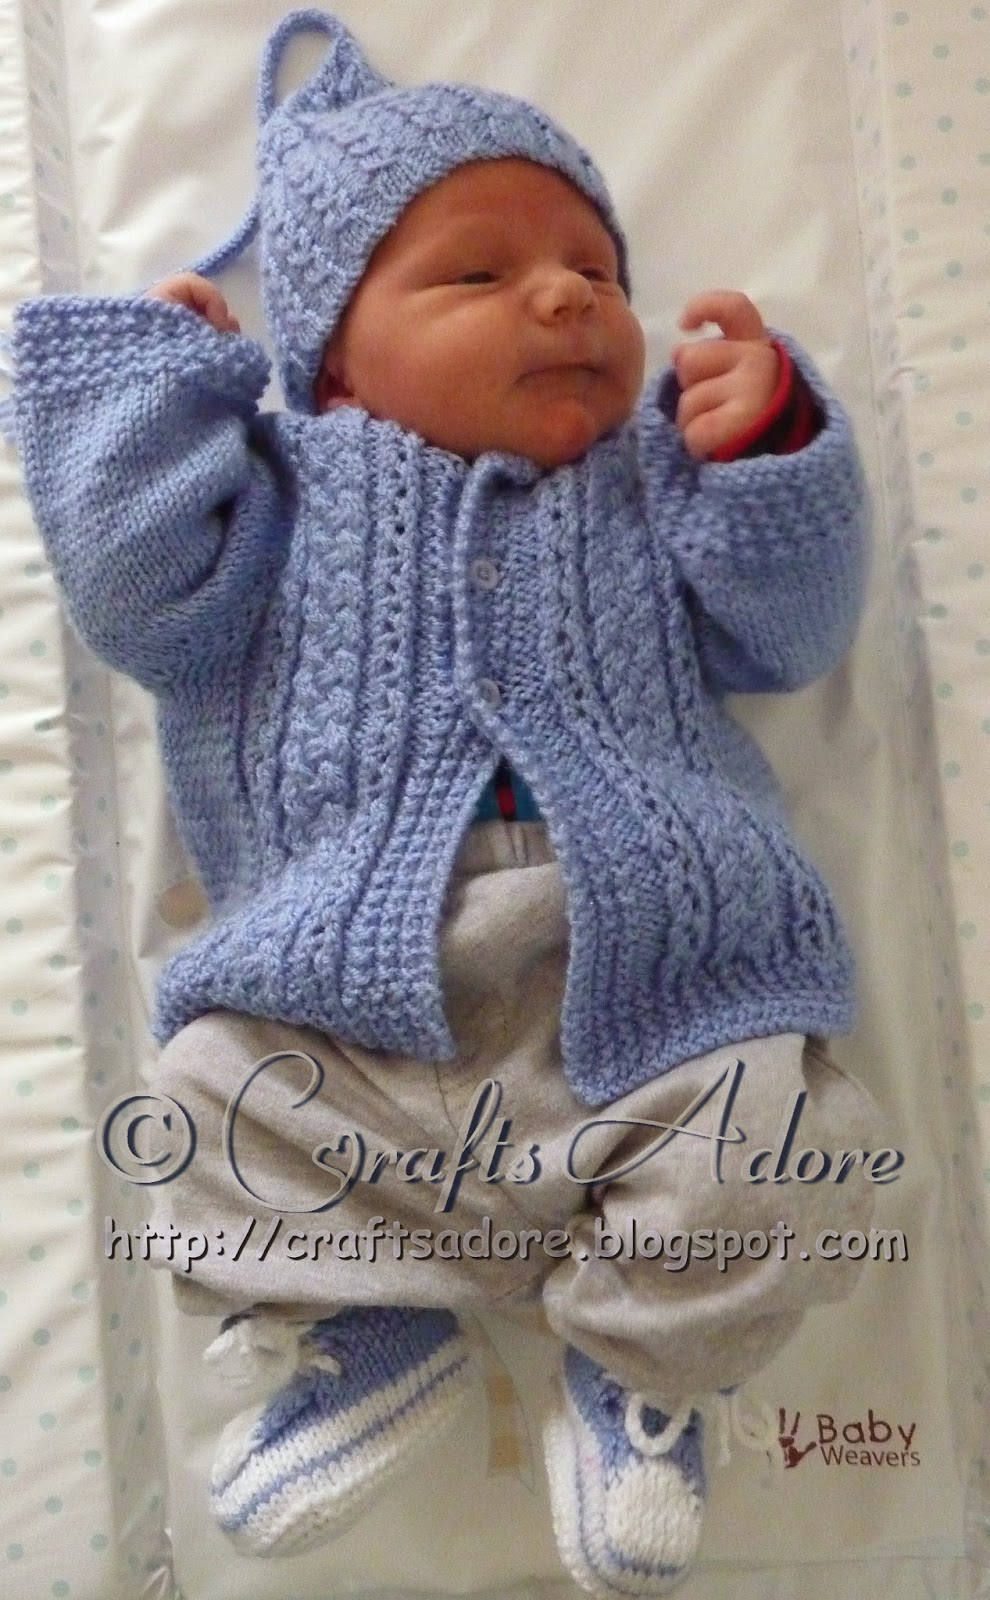 Free Knitting Patterns Baby Boy Clothes : CraftsAdore: